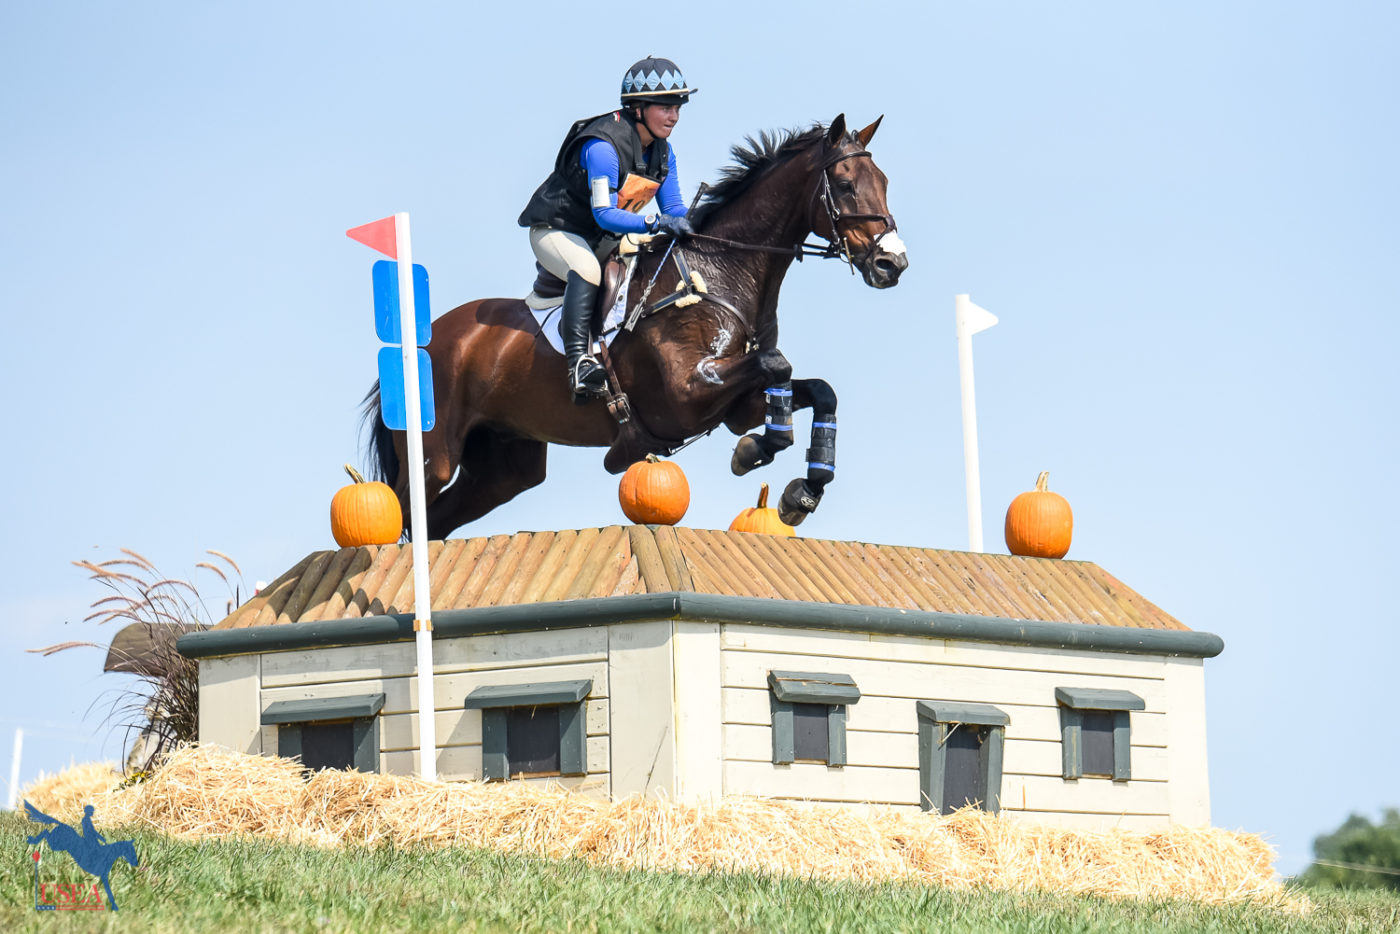 Ryan Keefe and 19-year-old Flintstar made easy work of the offset cabins. USEA/Jessica Duffy Photo.